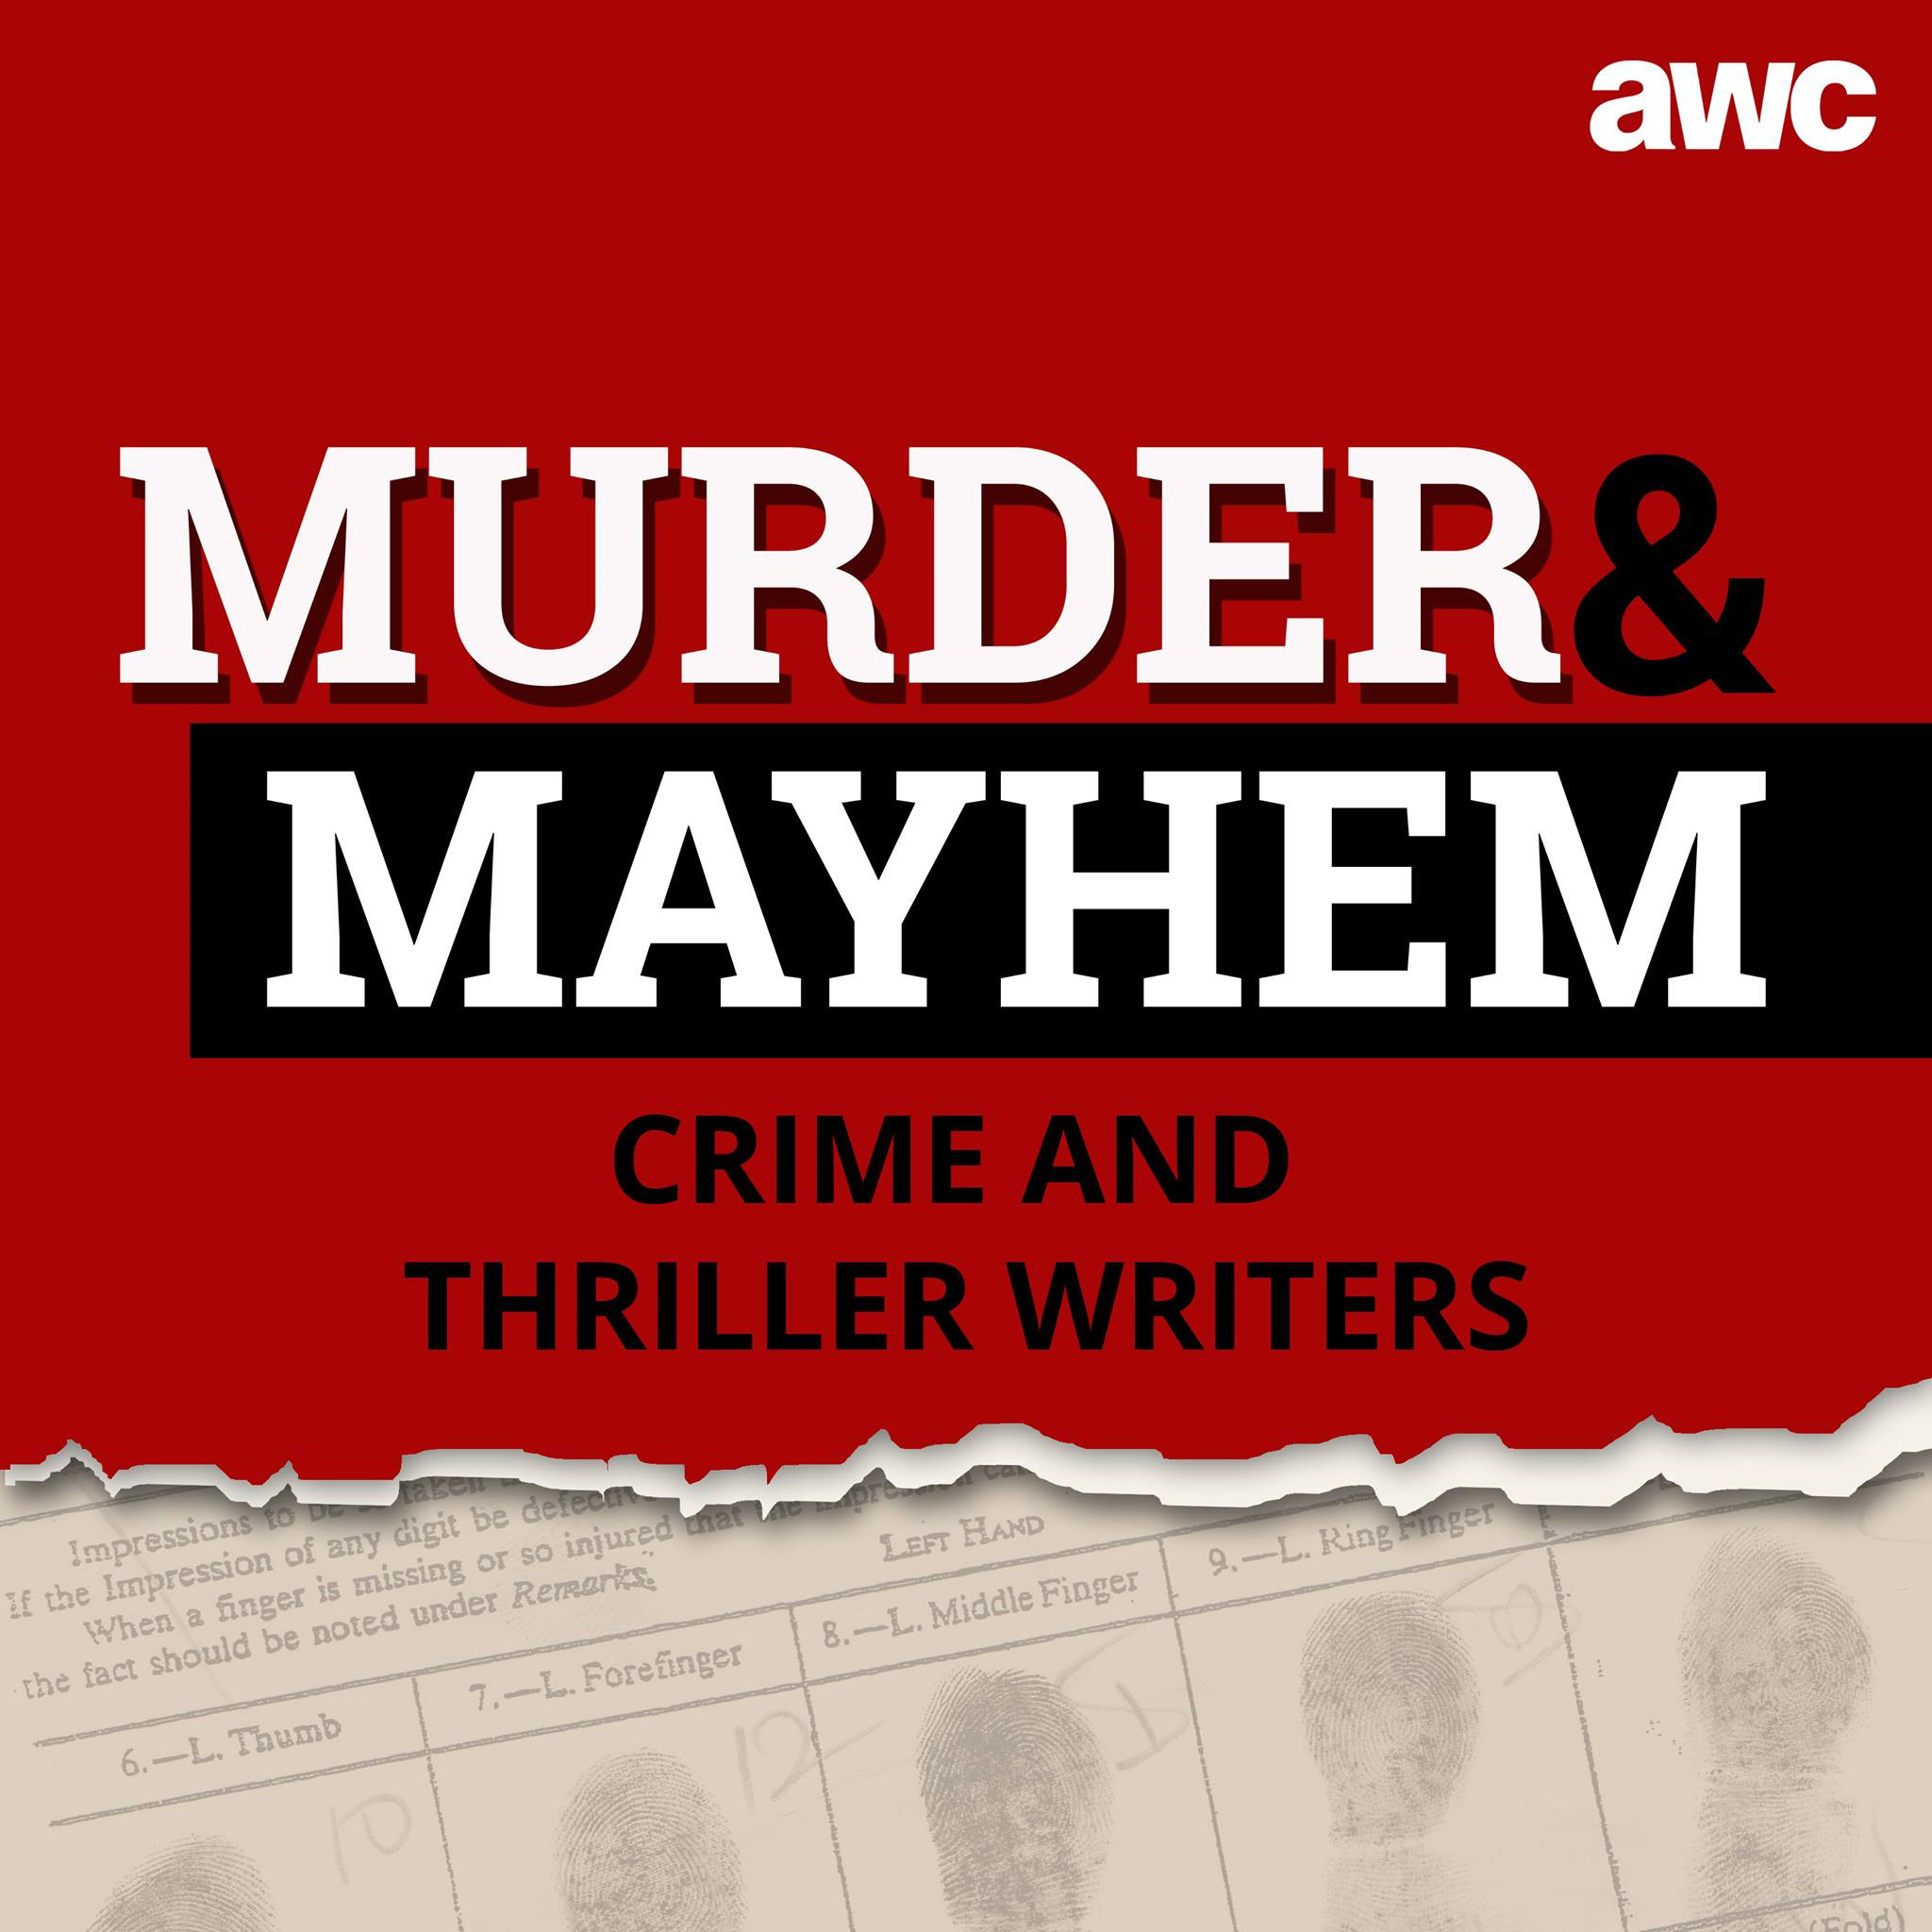 MURDER MAYHEM 24: Sydney Bauer worked in TV before moving on to become an author.